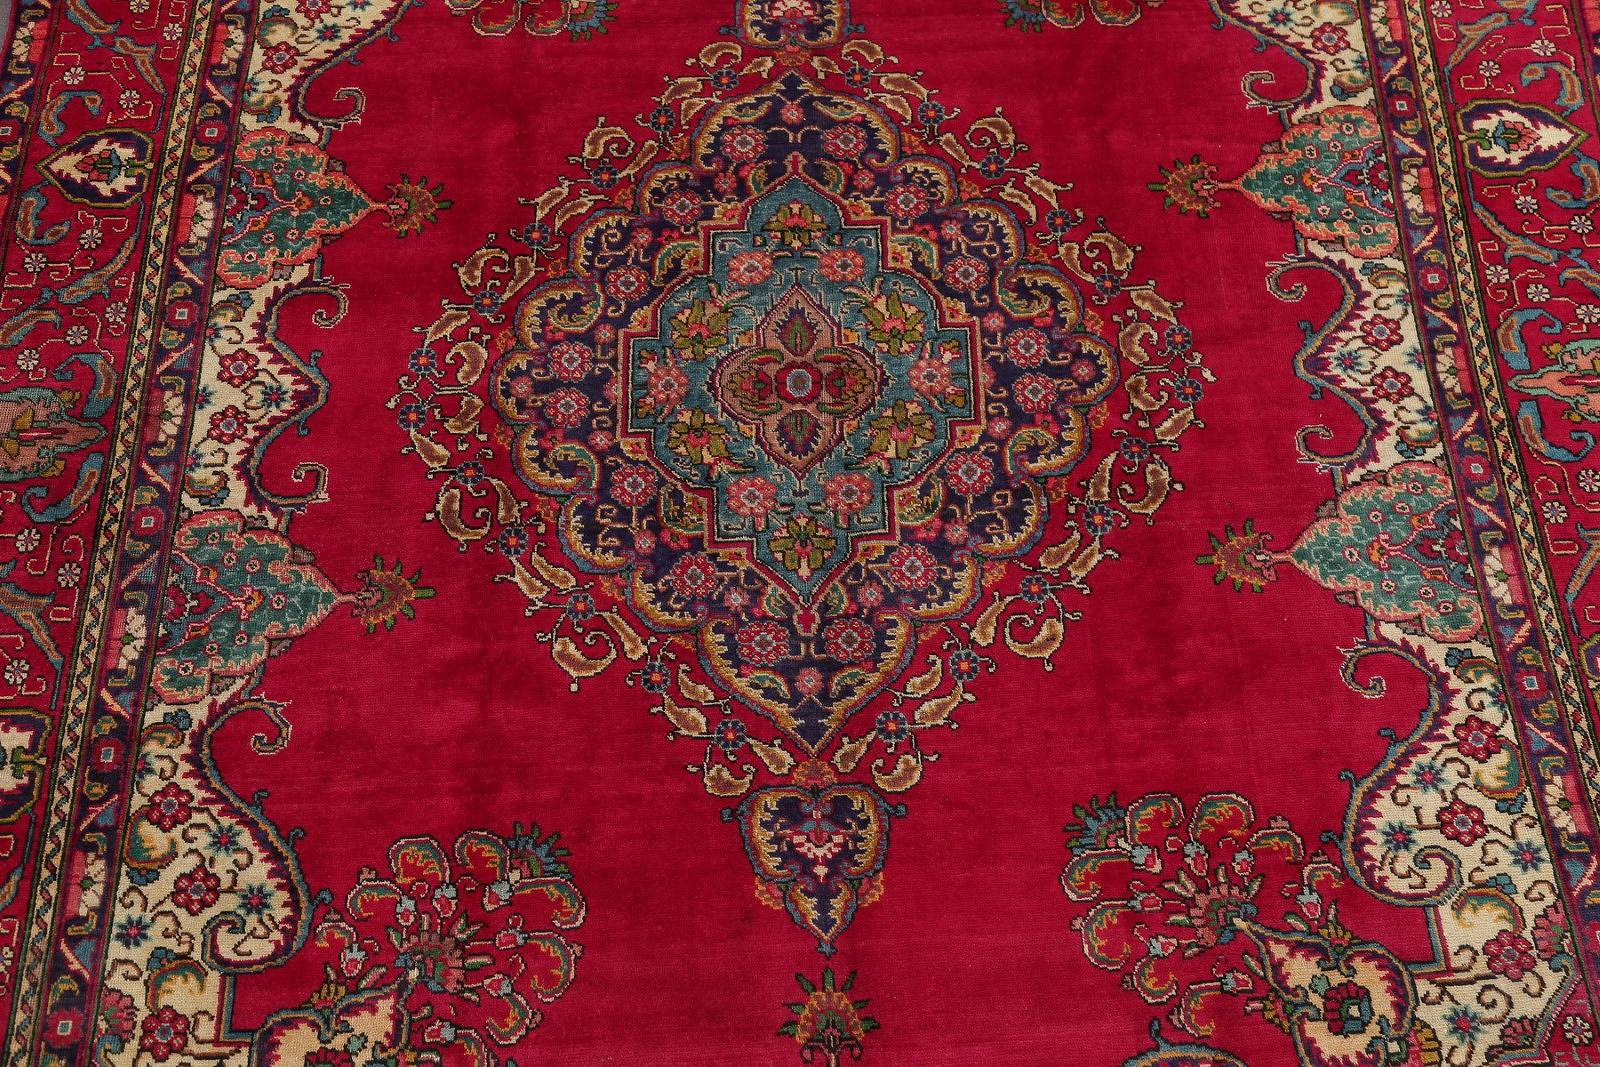 Hand-Knotted Red Floral Tabriz Persian Area Rug Wool 10x13